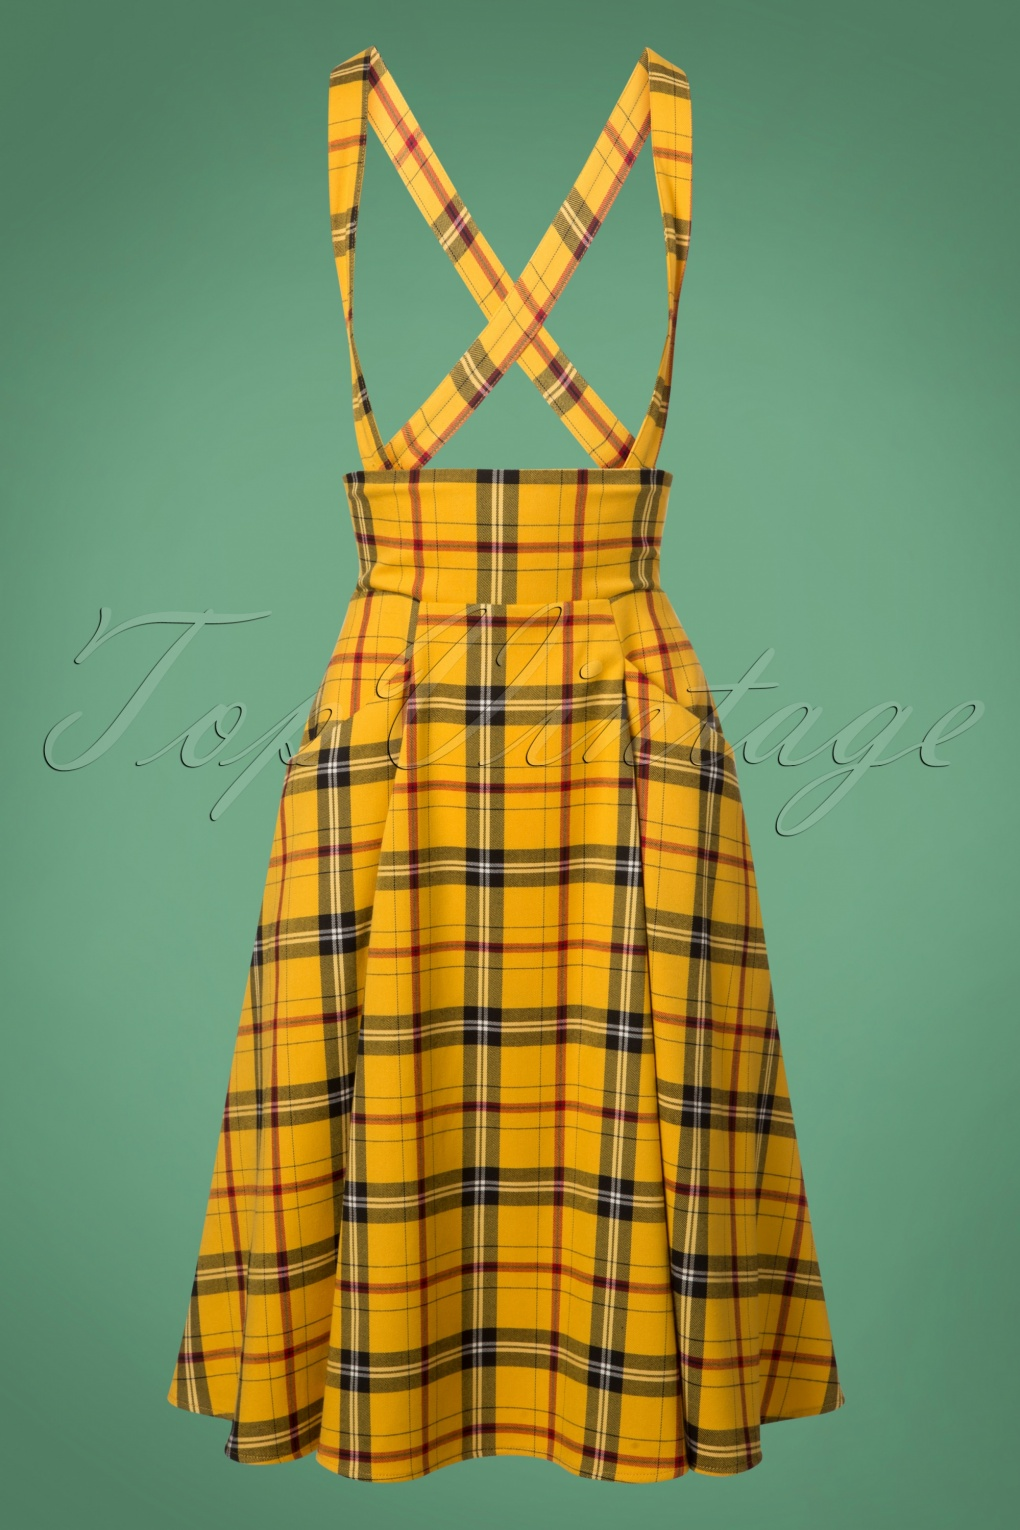 1950s Swing Skirt, Poodle Skirt, Pencil Skirts 50s Alexa Clueless Check Swing Skirt in Yellow £51.90 AT vintagedancer.com